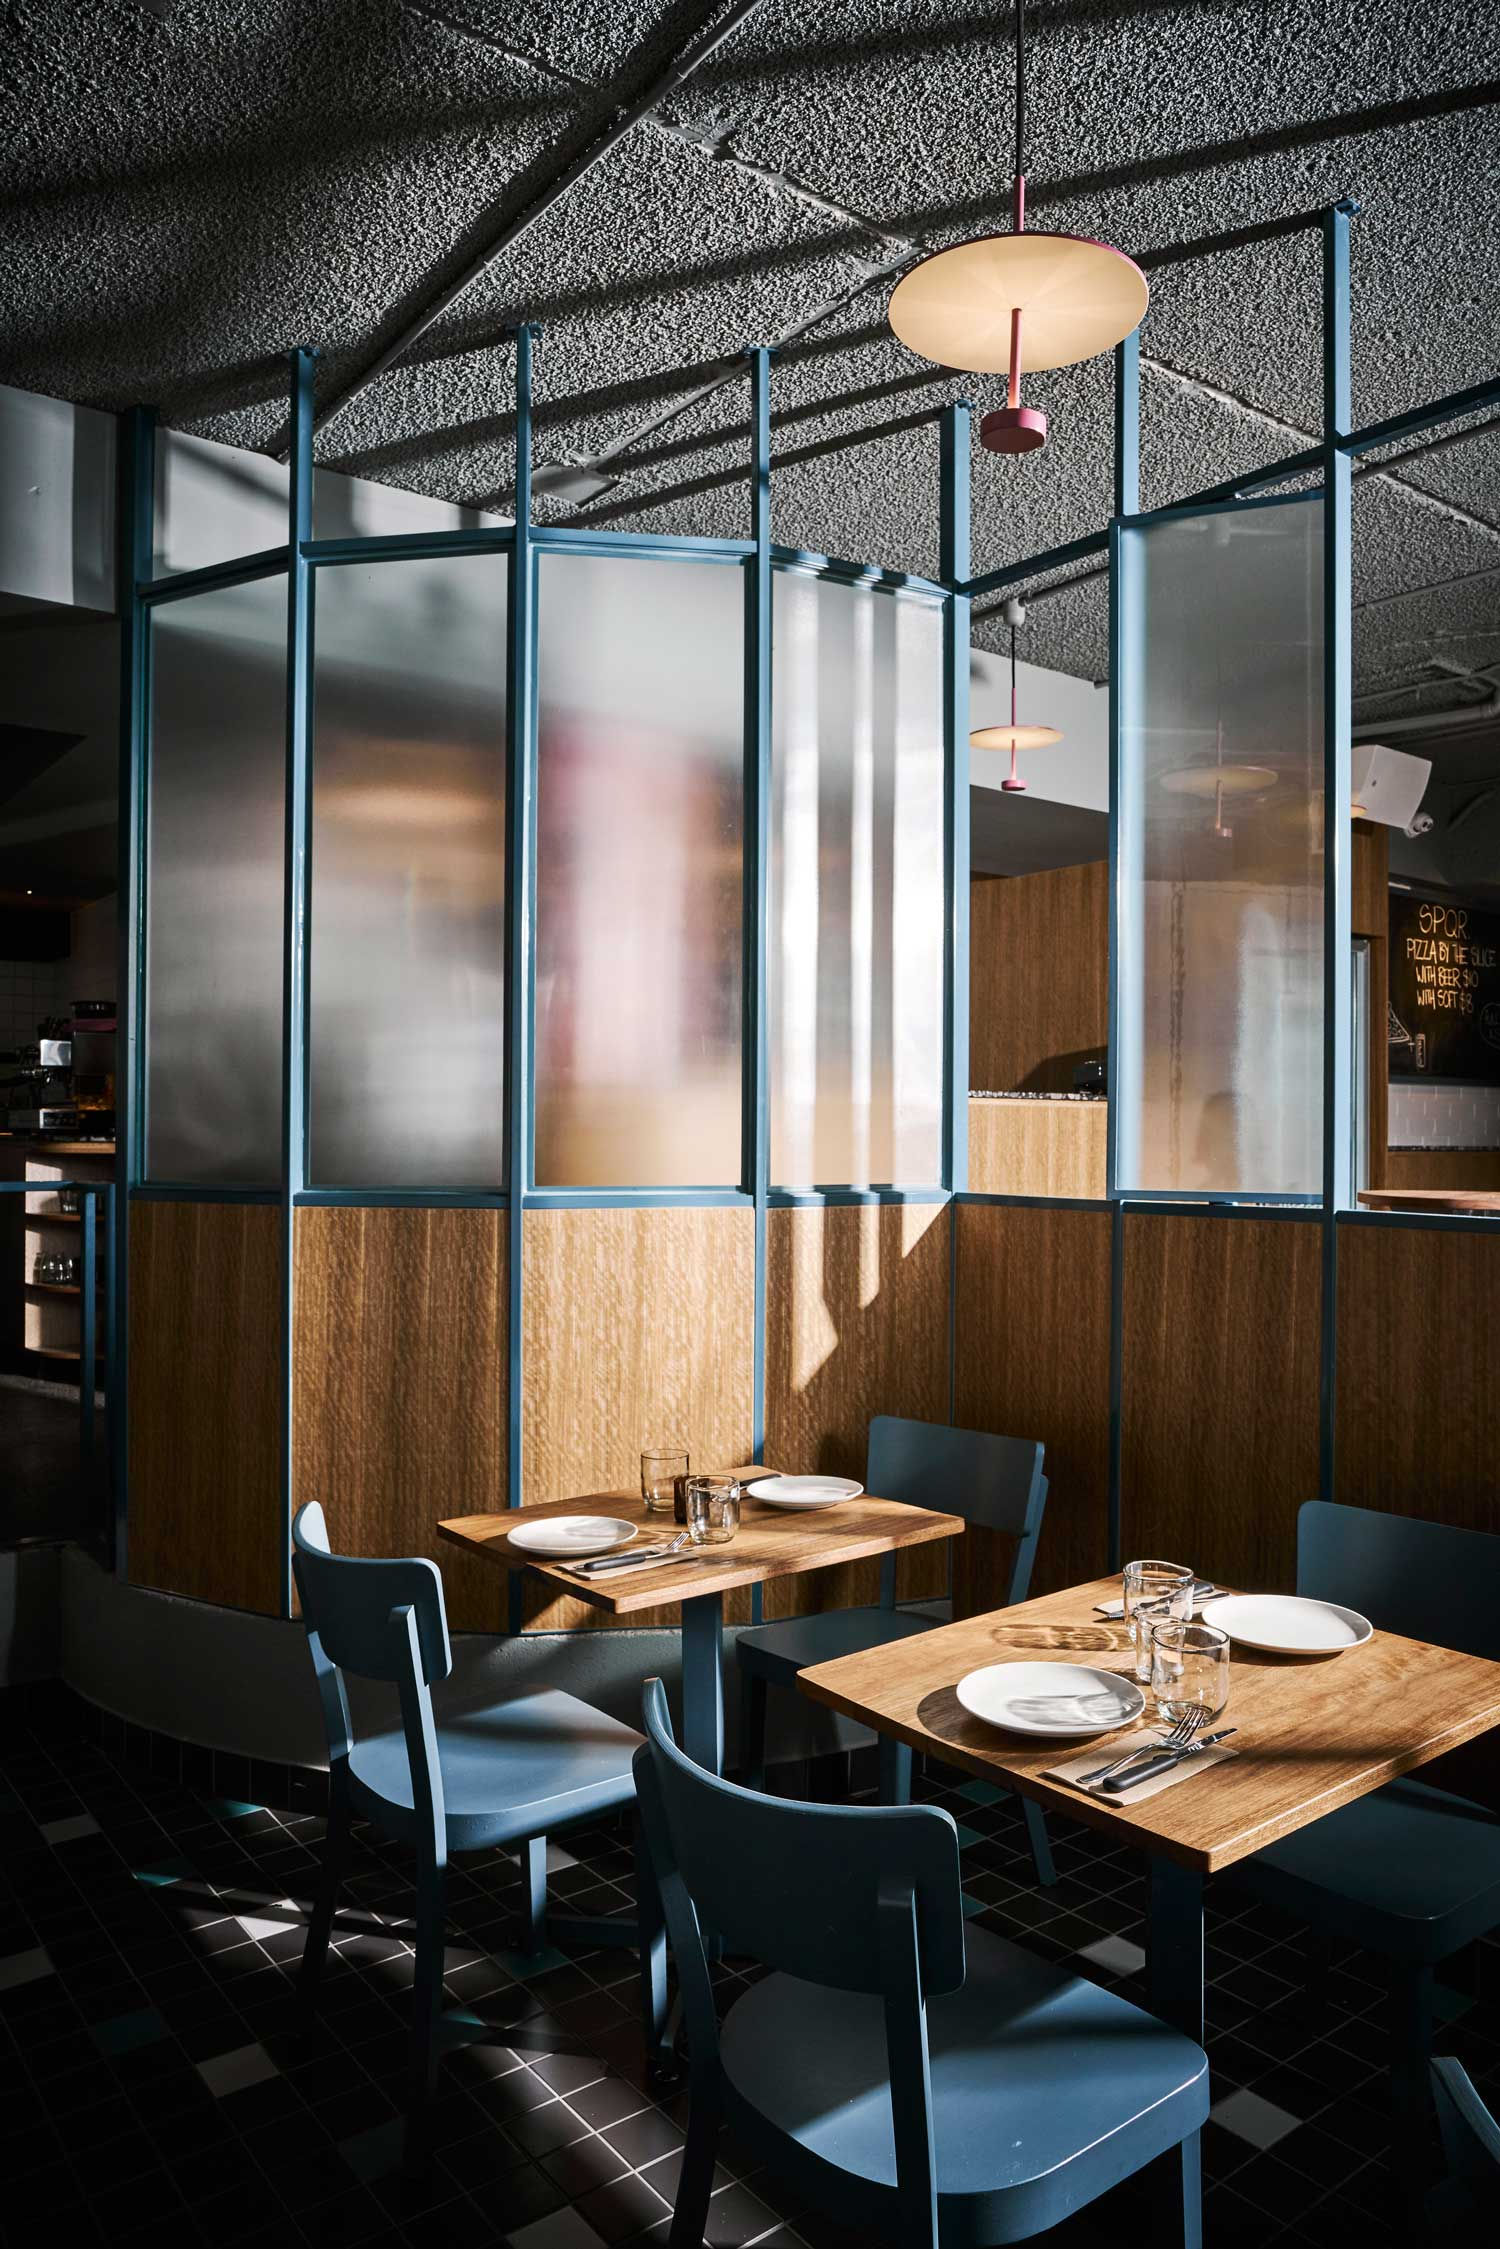 SPQR Pizzeria by Ha. Photo by Kristoffer Paulsen | Yellowtrace